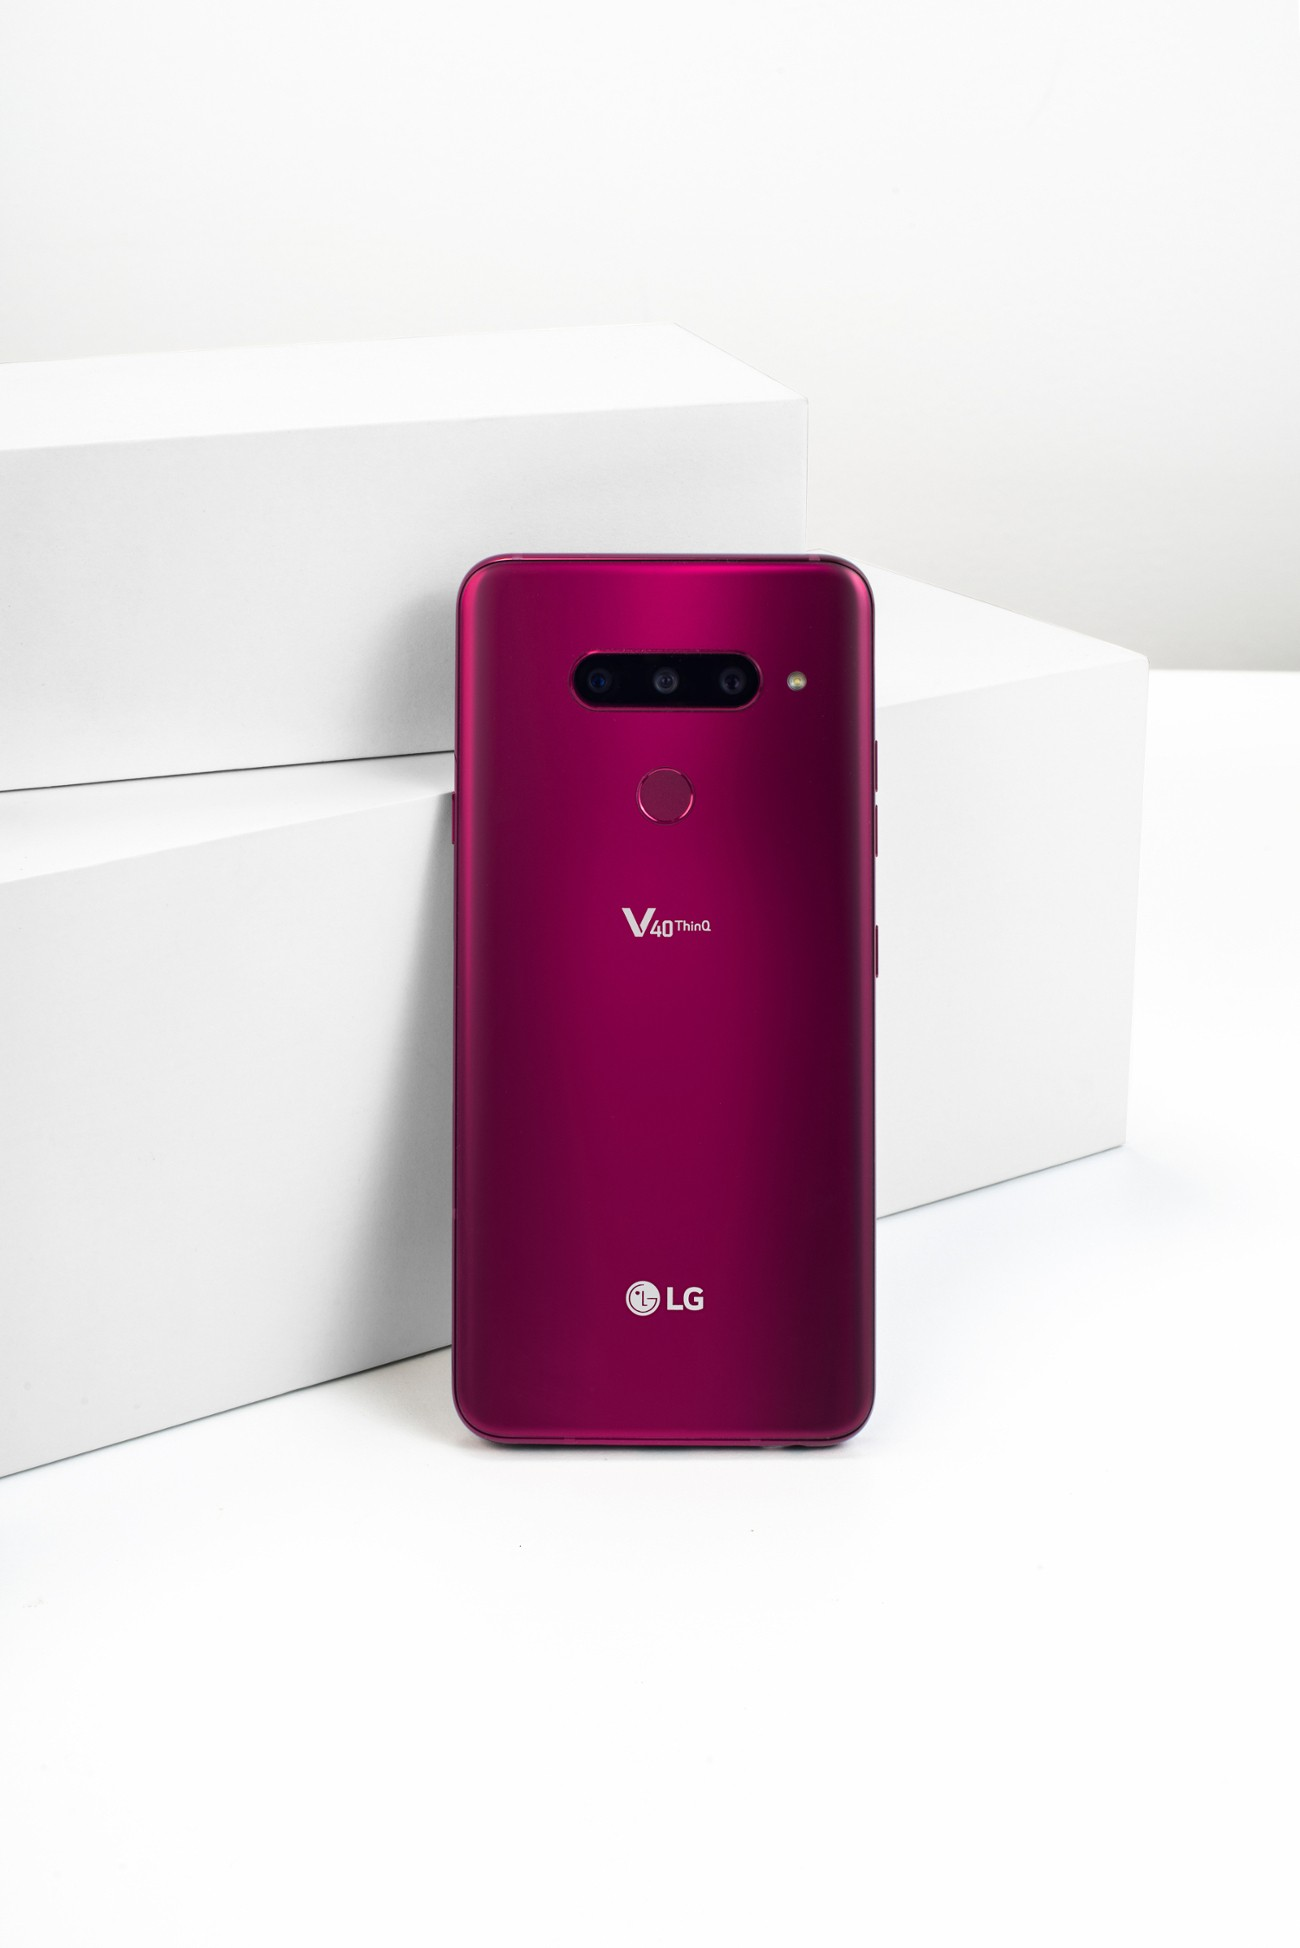 The rear view of the LG V40 ThinQ in Carmine Red